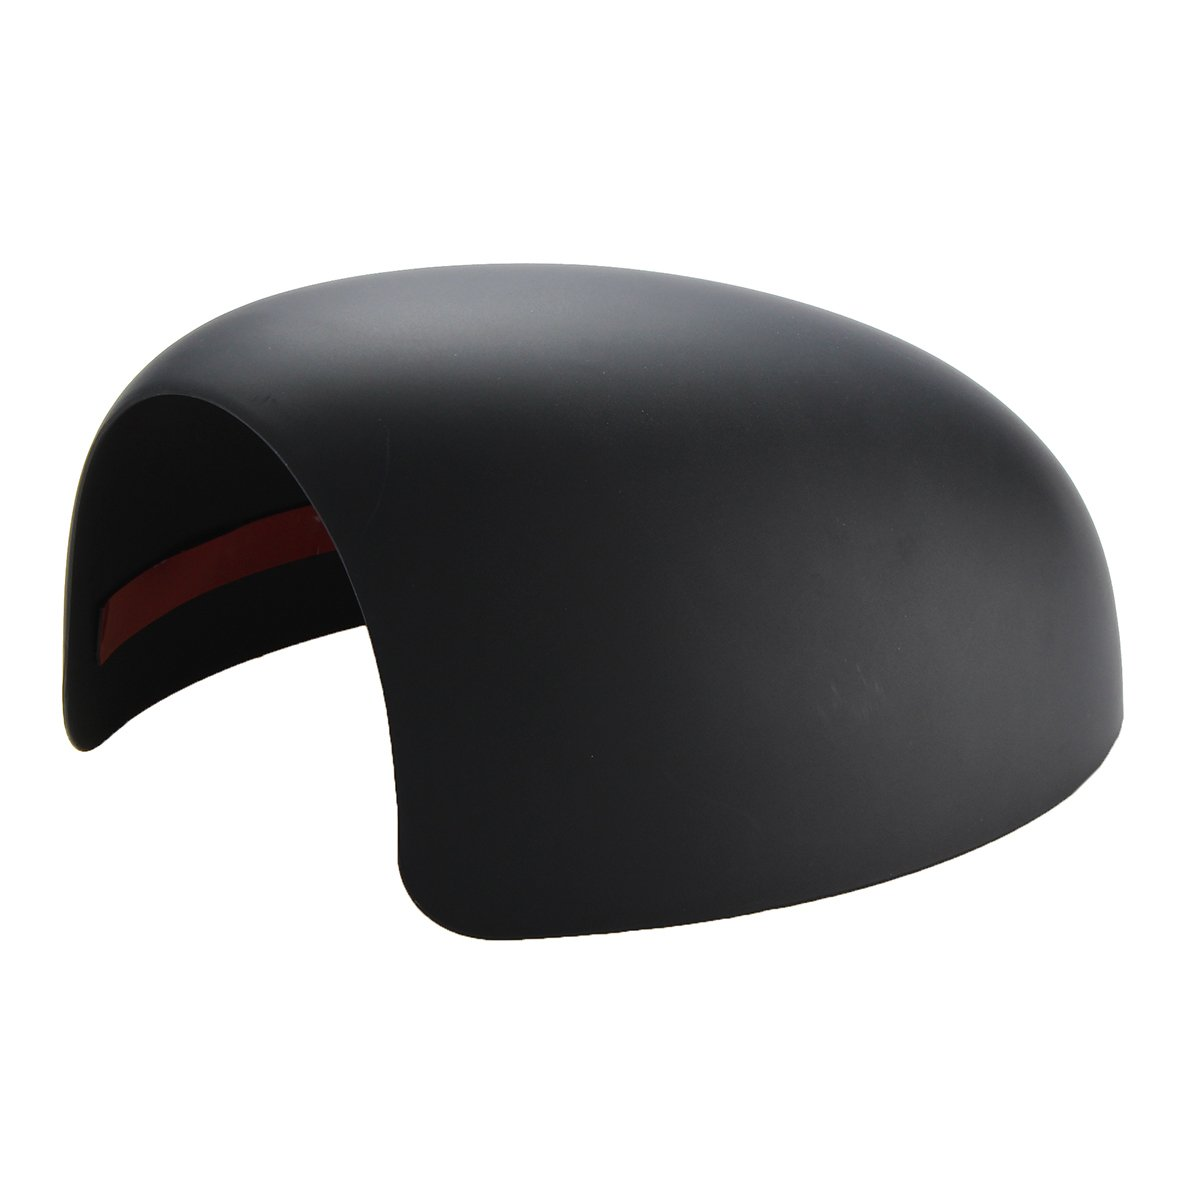 NICOLIE Left Passenger Side Car Door Wing Mirror Cover Casing For Mini R52 R50 R53 2001-2006